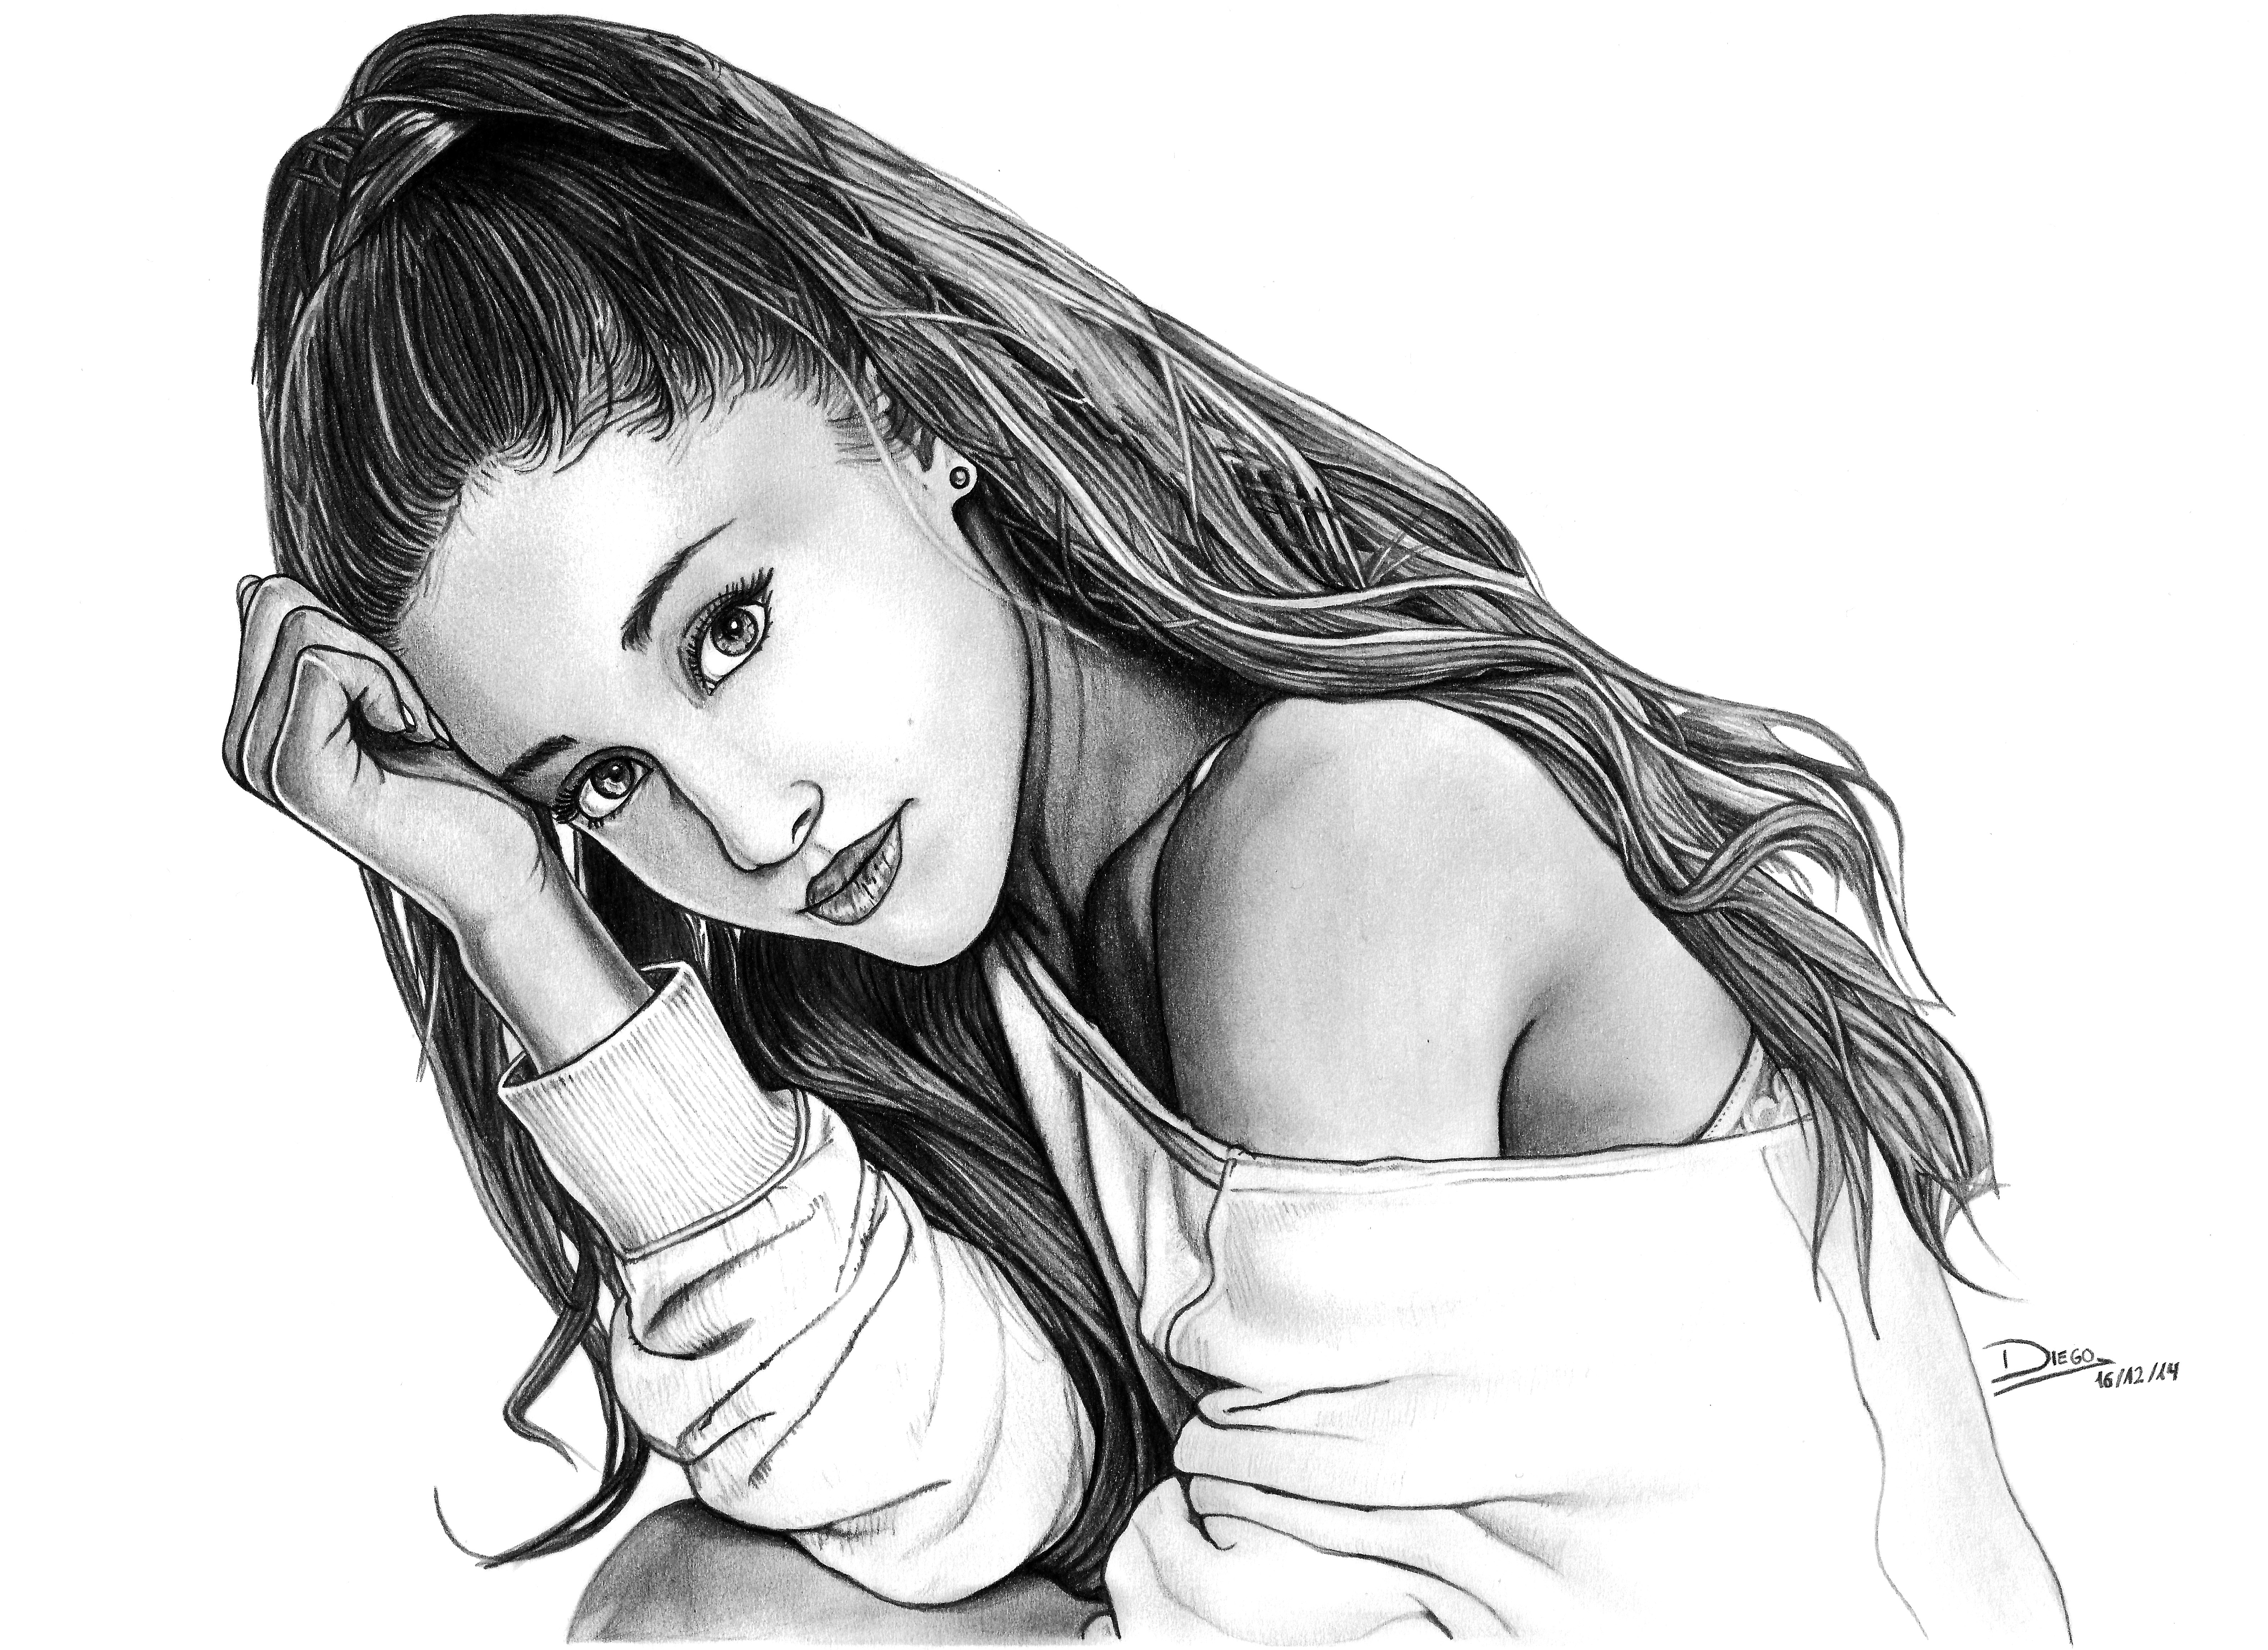 Ariana Grande By DiegoCR On DeviantArt